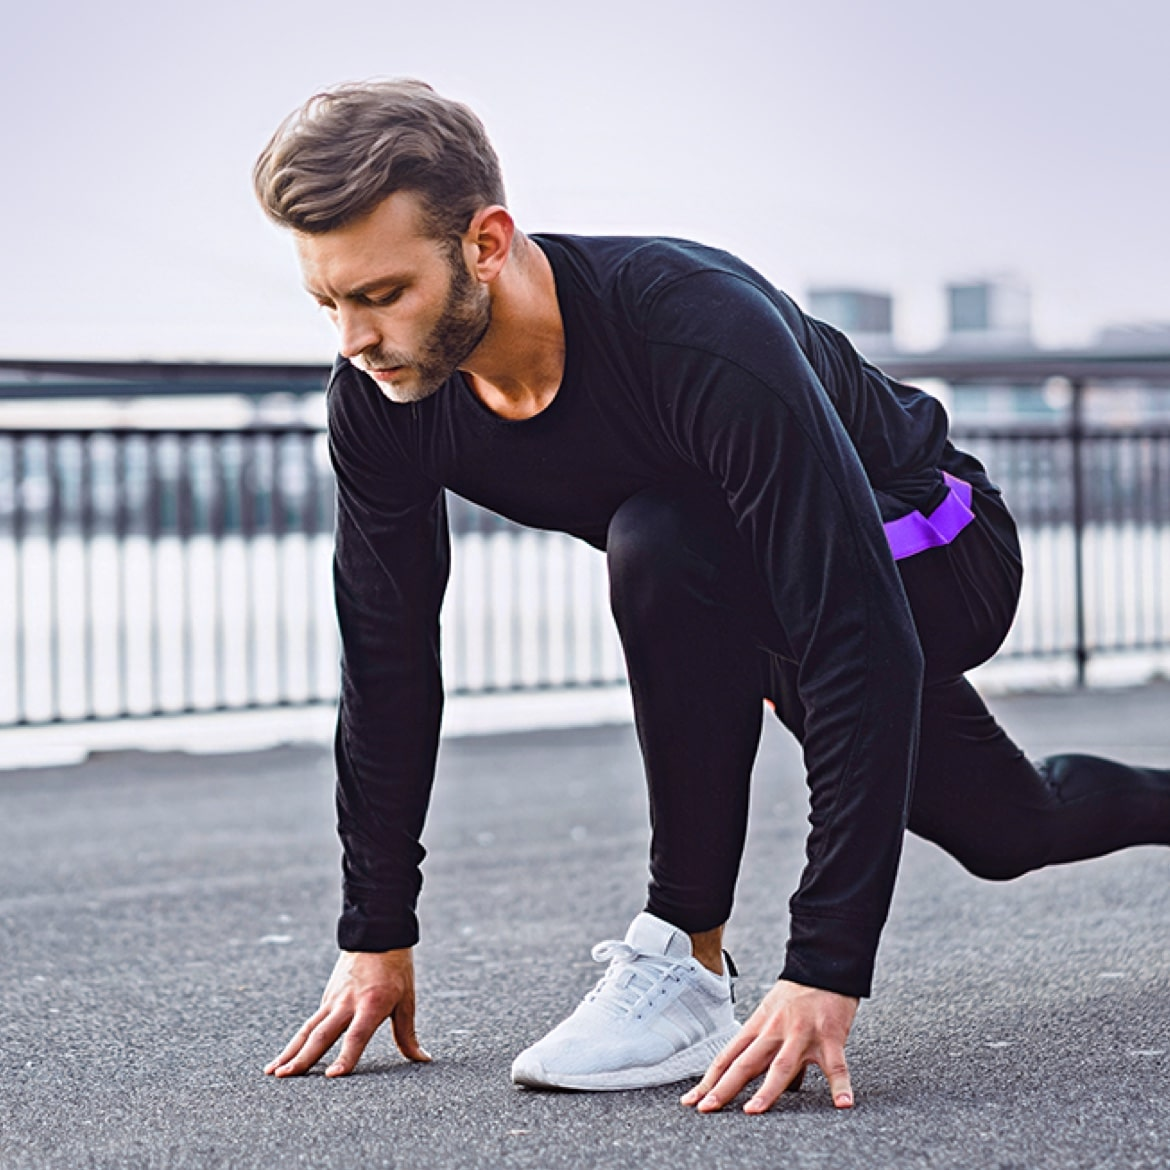 Young man stretching after a run